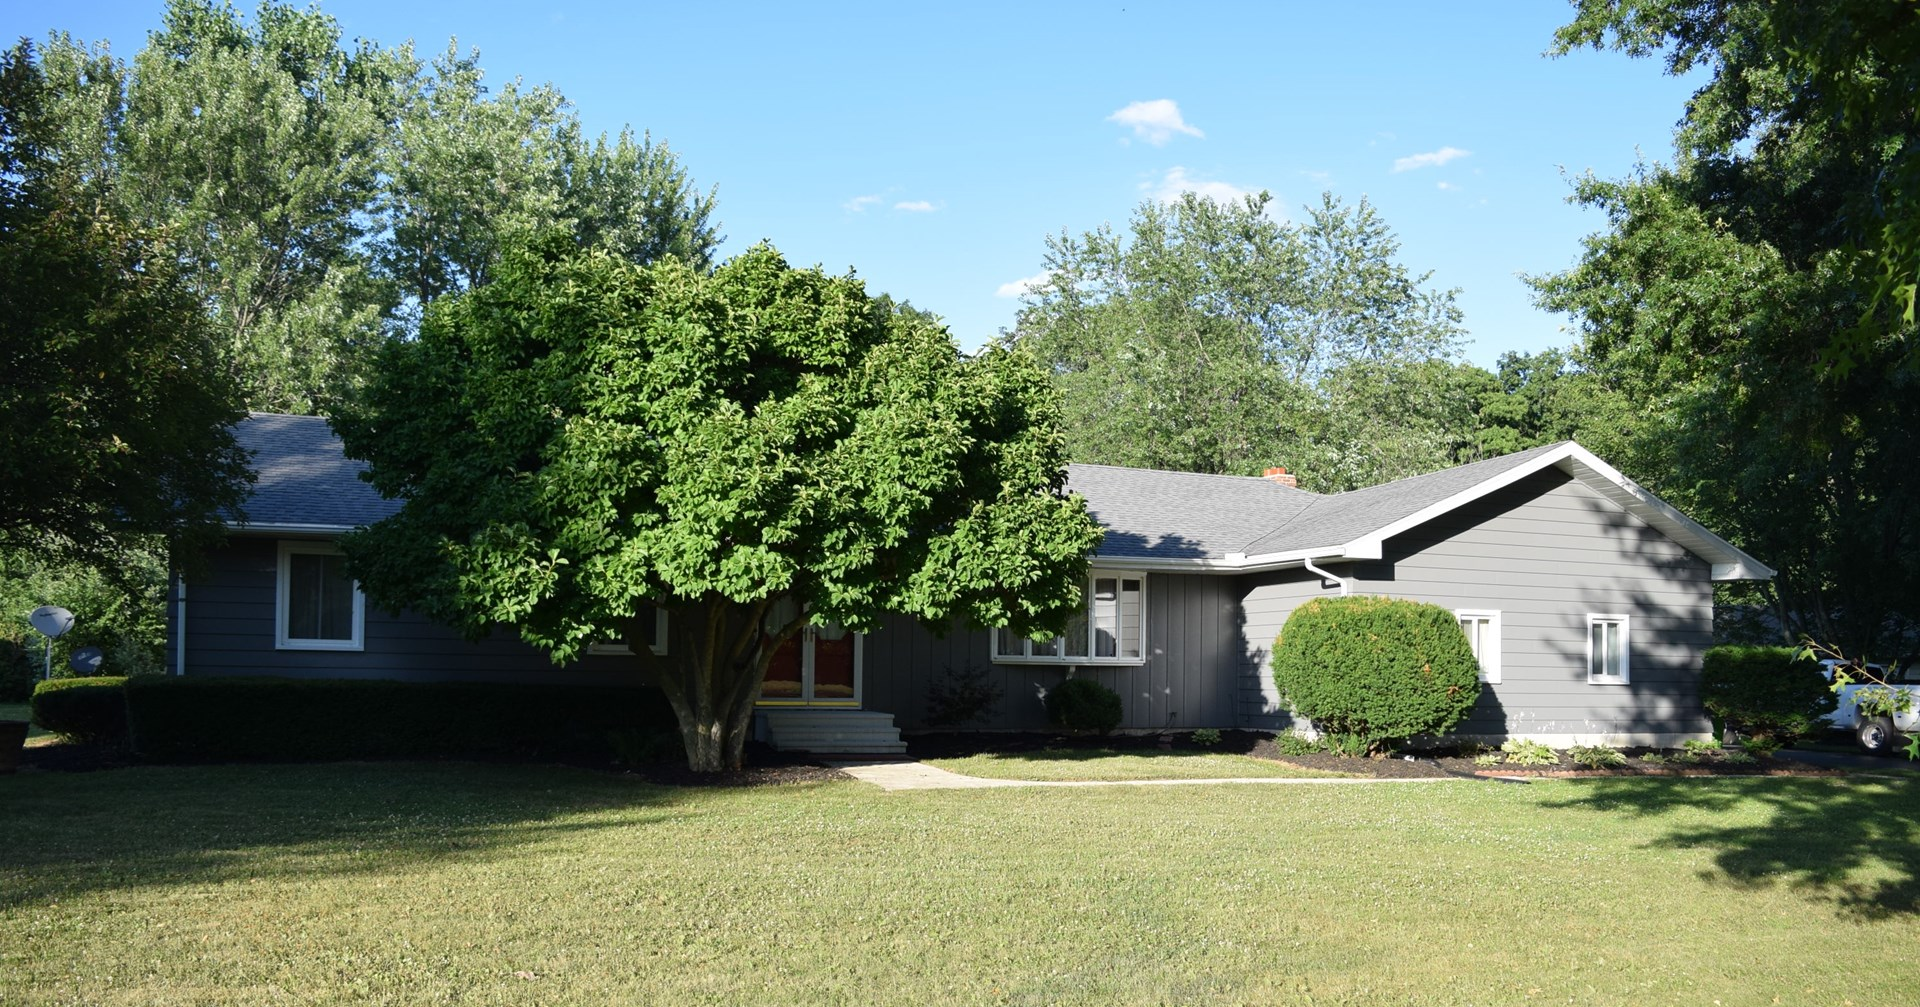 DaPore  Auction - Real Estate & Chattels - Aug. 27 @ Noon